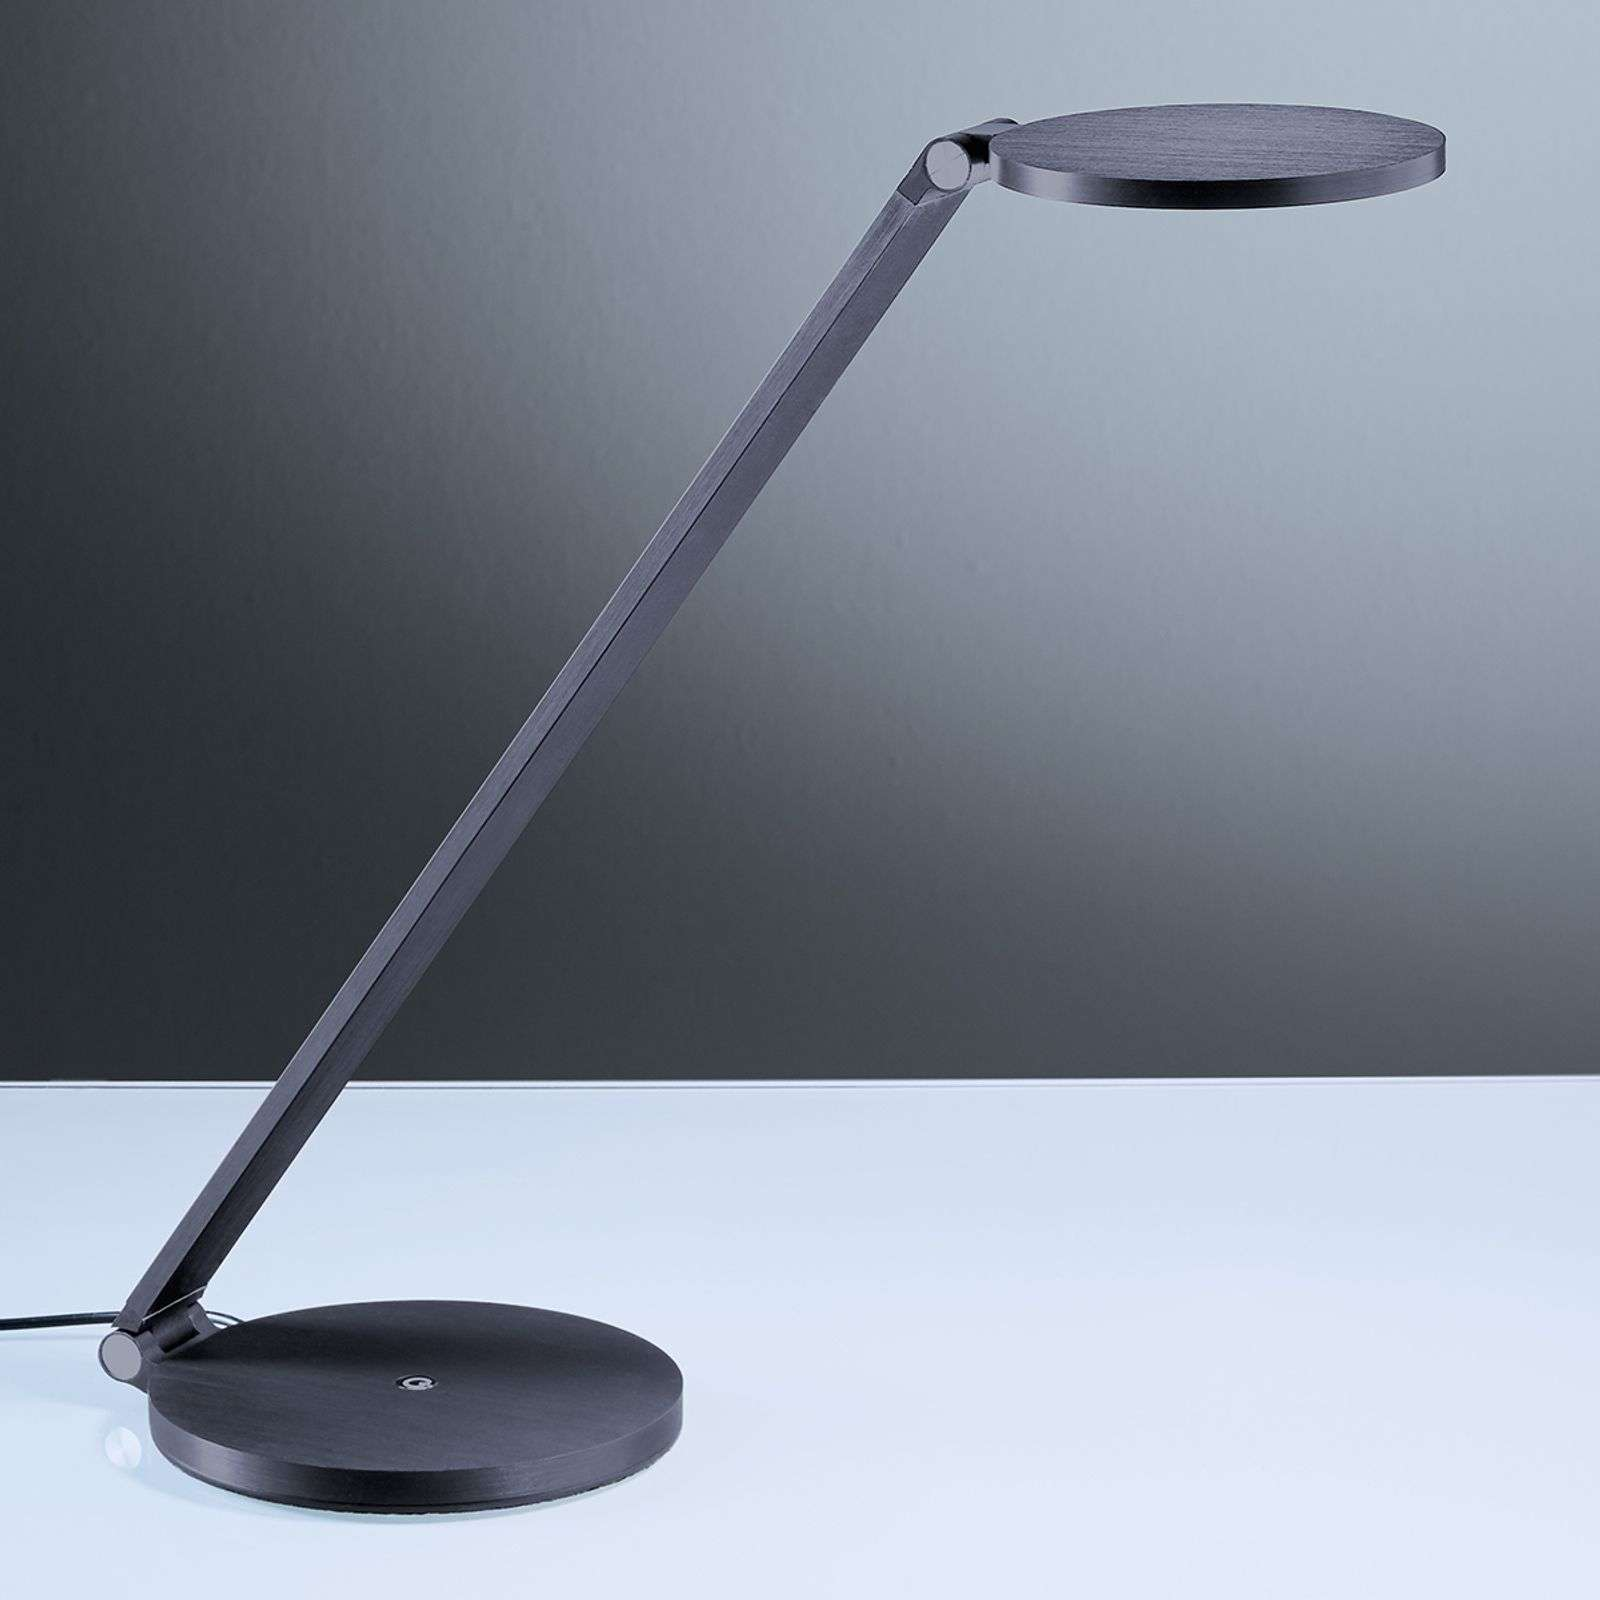 Lampe à poser LED Consul anthracite, dimmable